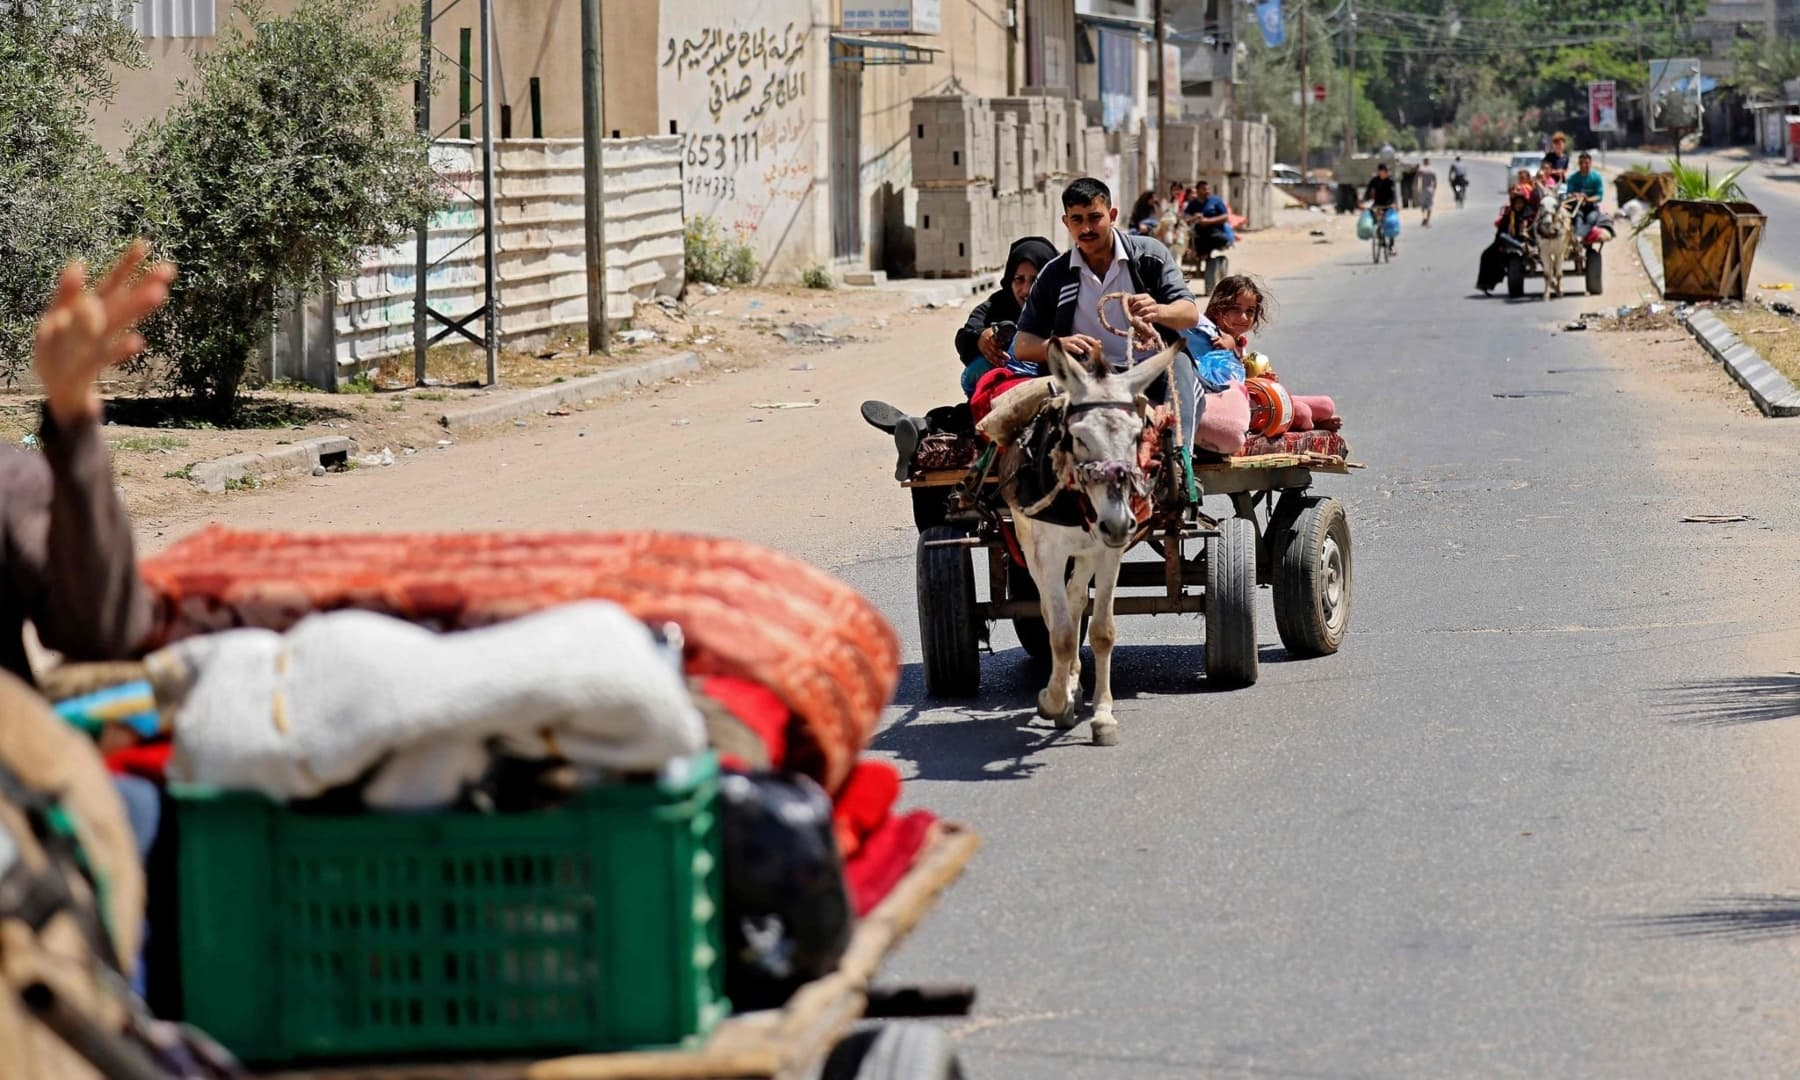 Members of a Palestinian family atop a carriage pulled by a donkey in Beit Lahya in the northern Gaza Strip, flee Israeli air and artillery strikes, to a safer location, May 14, 2021. — AFP